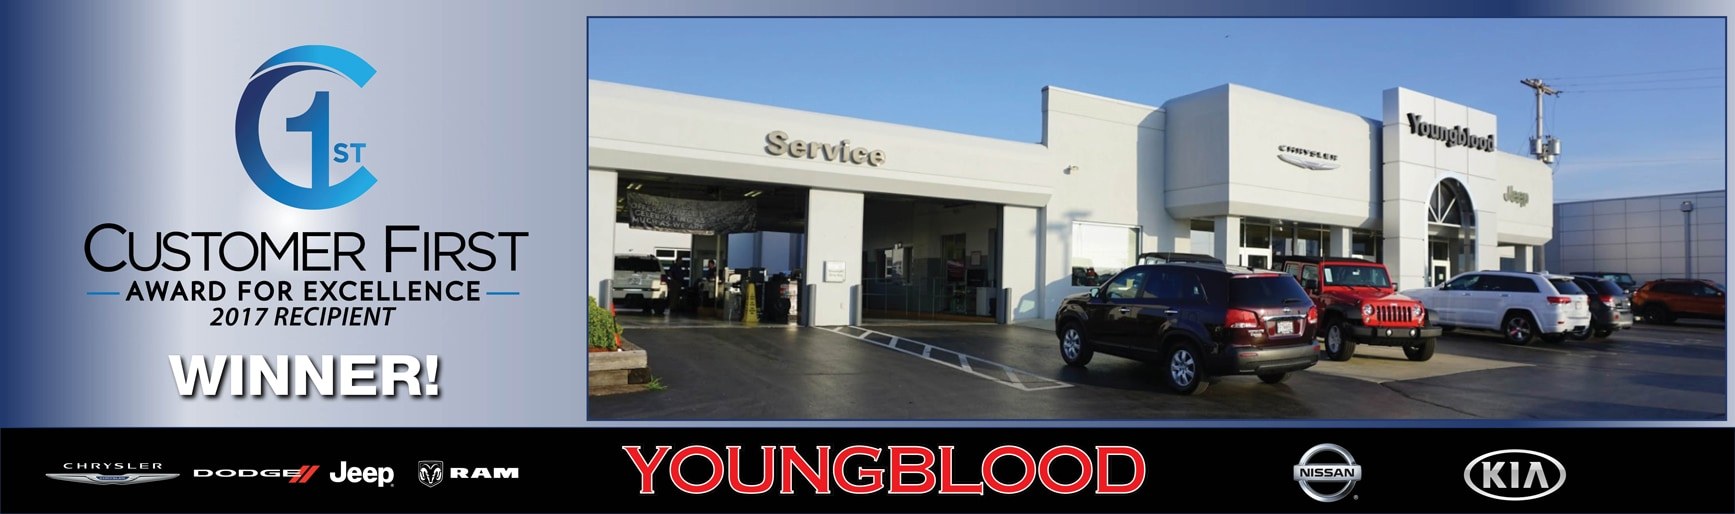 Jeep Dealership Springfield Mo >> Youngblood Auto Group | New Kia, Jeep, Dodge, Chrysler, Nissan, Ram dealership in Springfield ...